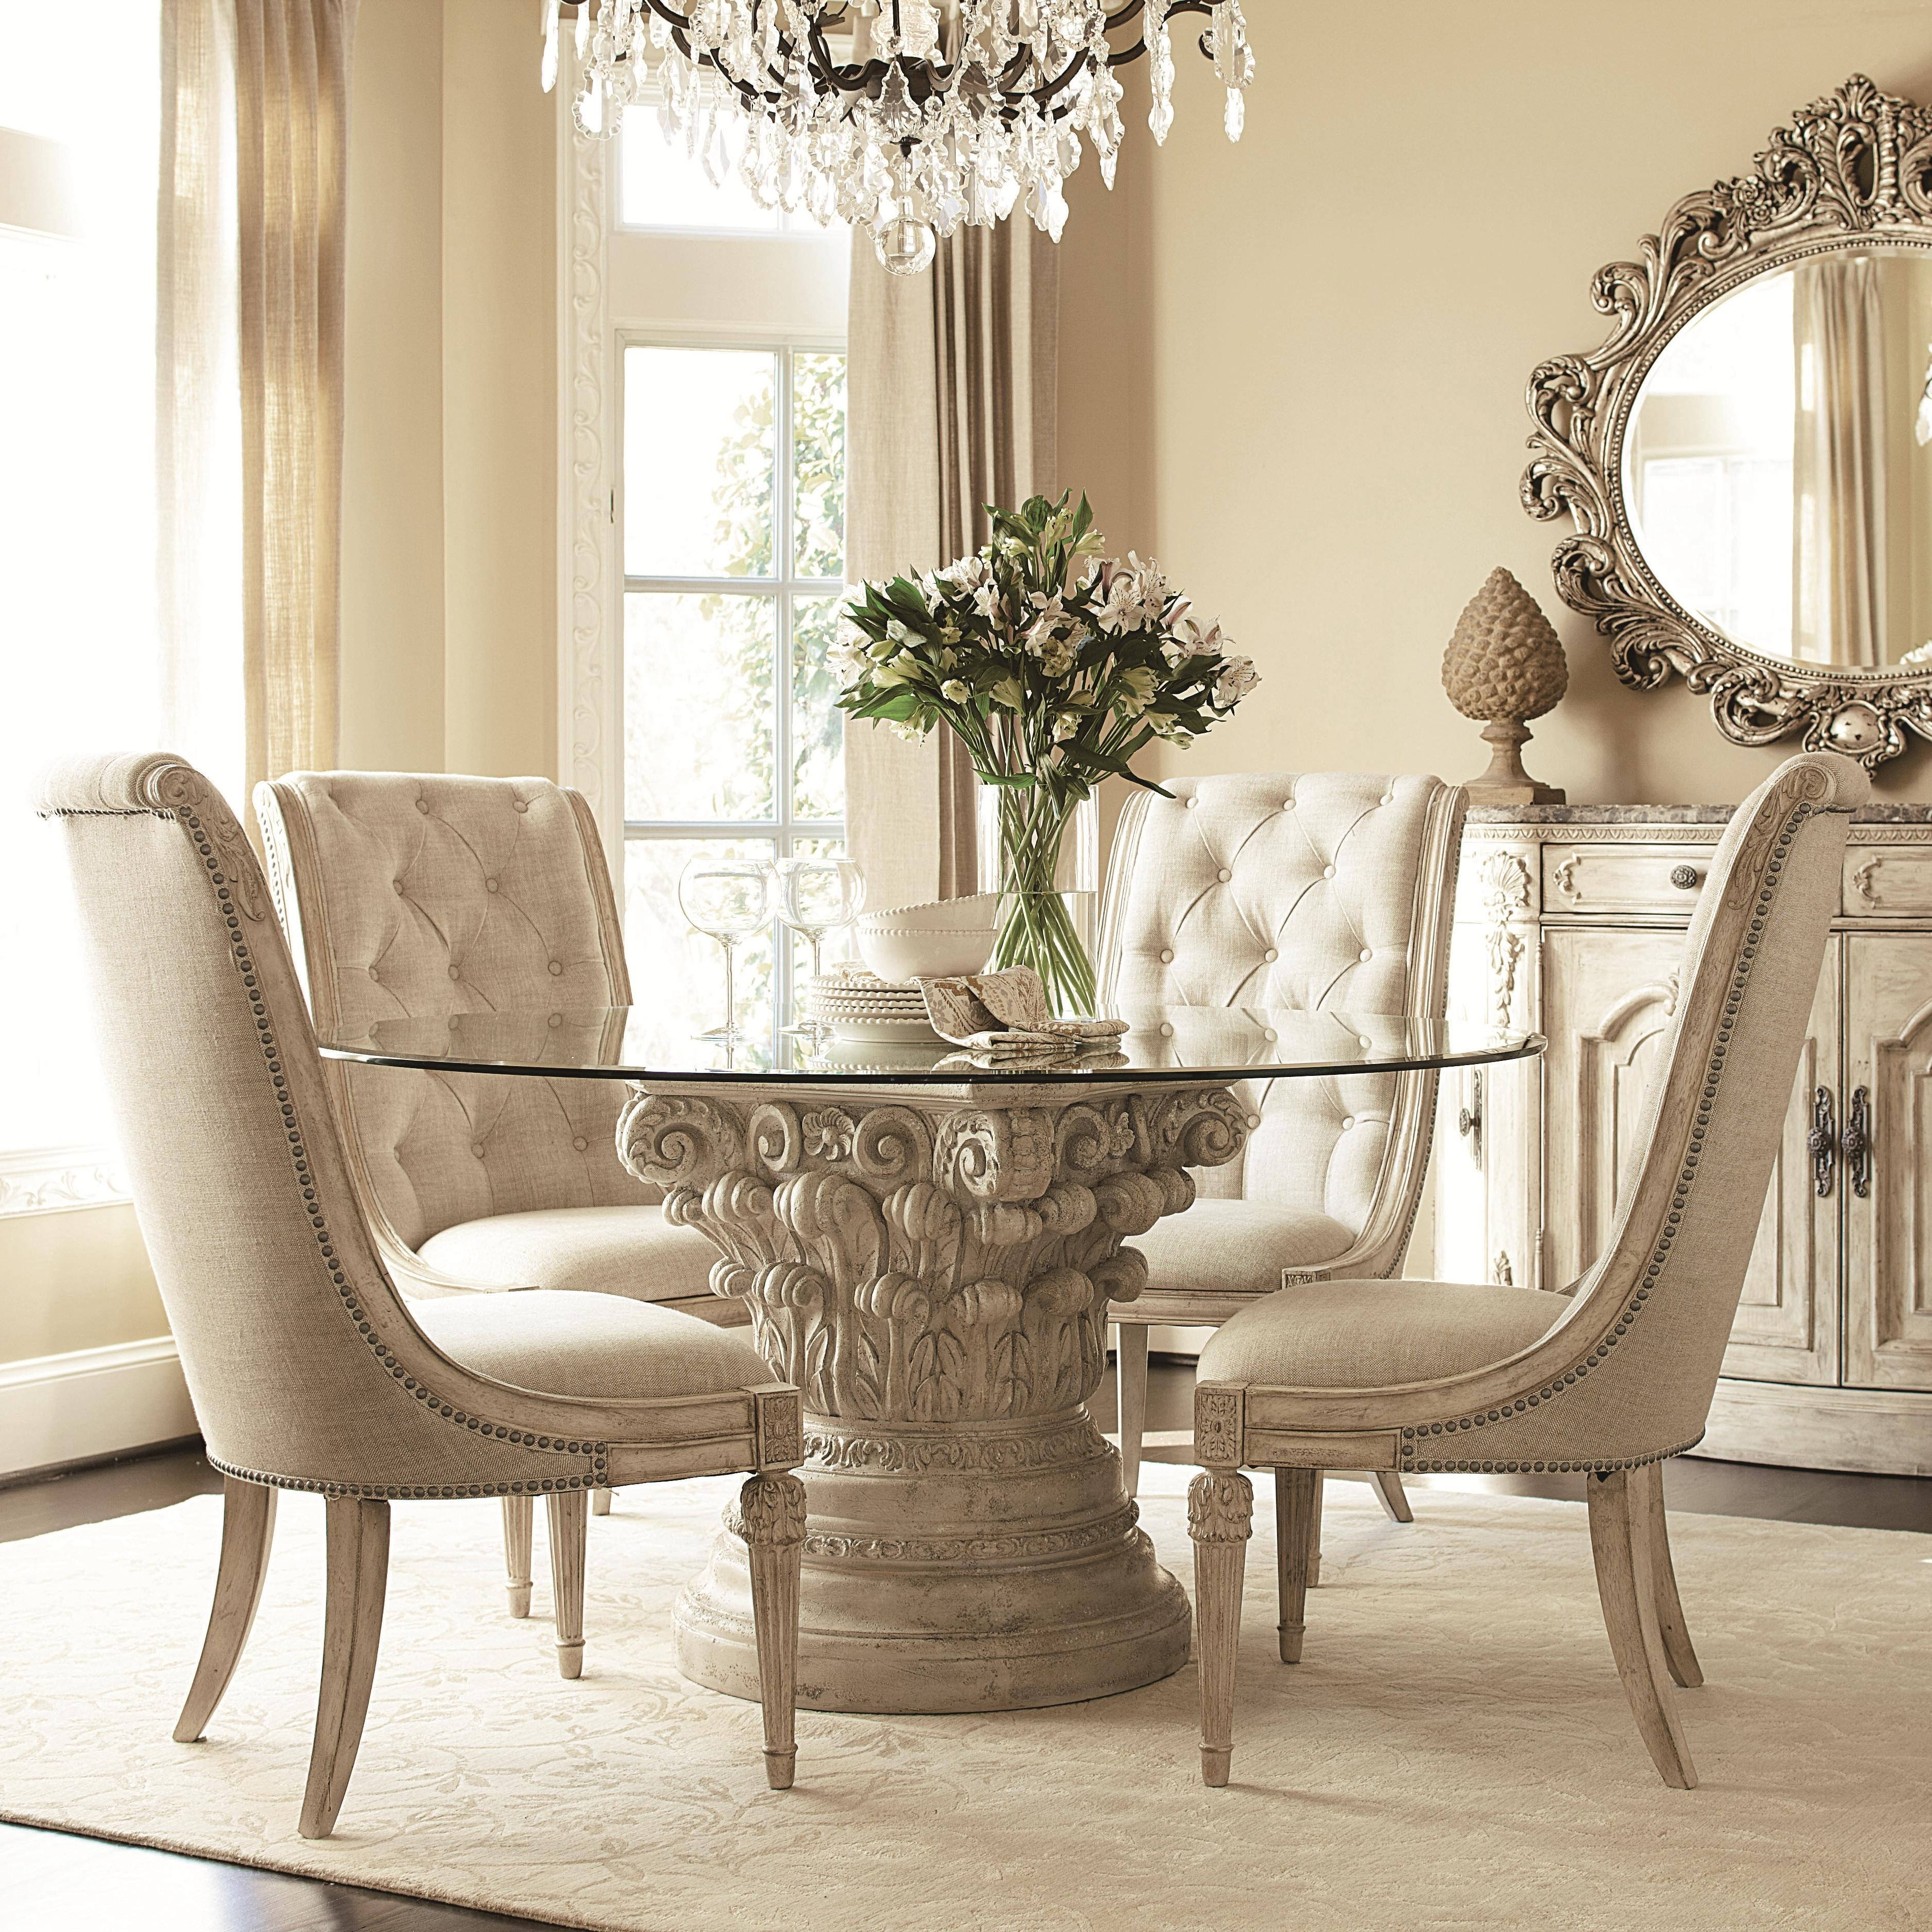 American Drew Jessica Mcclintock Home – The Boutique Collection 5 Intended For 2018 Caira Black 5 Piece Round Dining Sets With Upholstered Side Chairs (View 4 of 25)